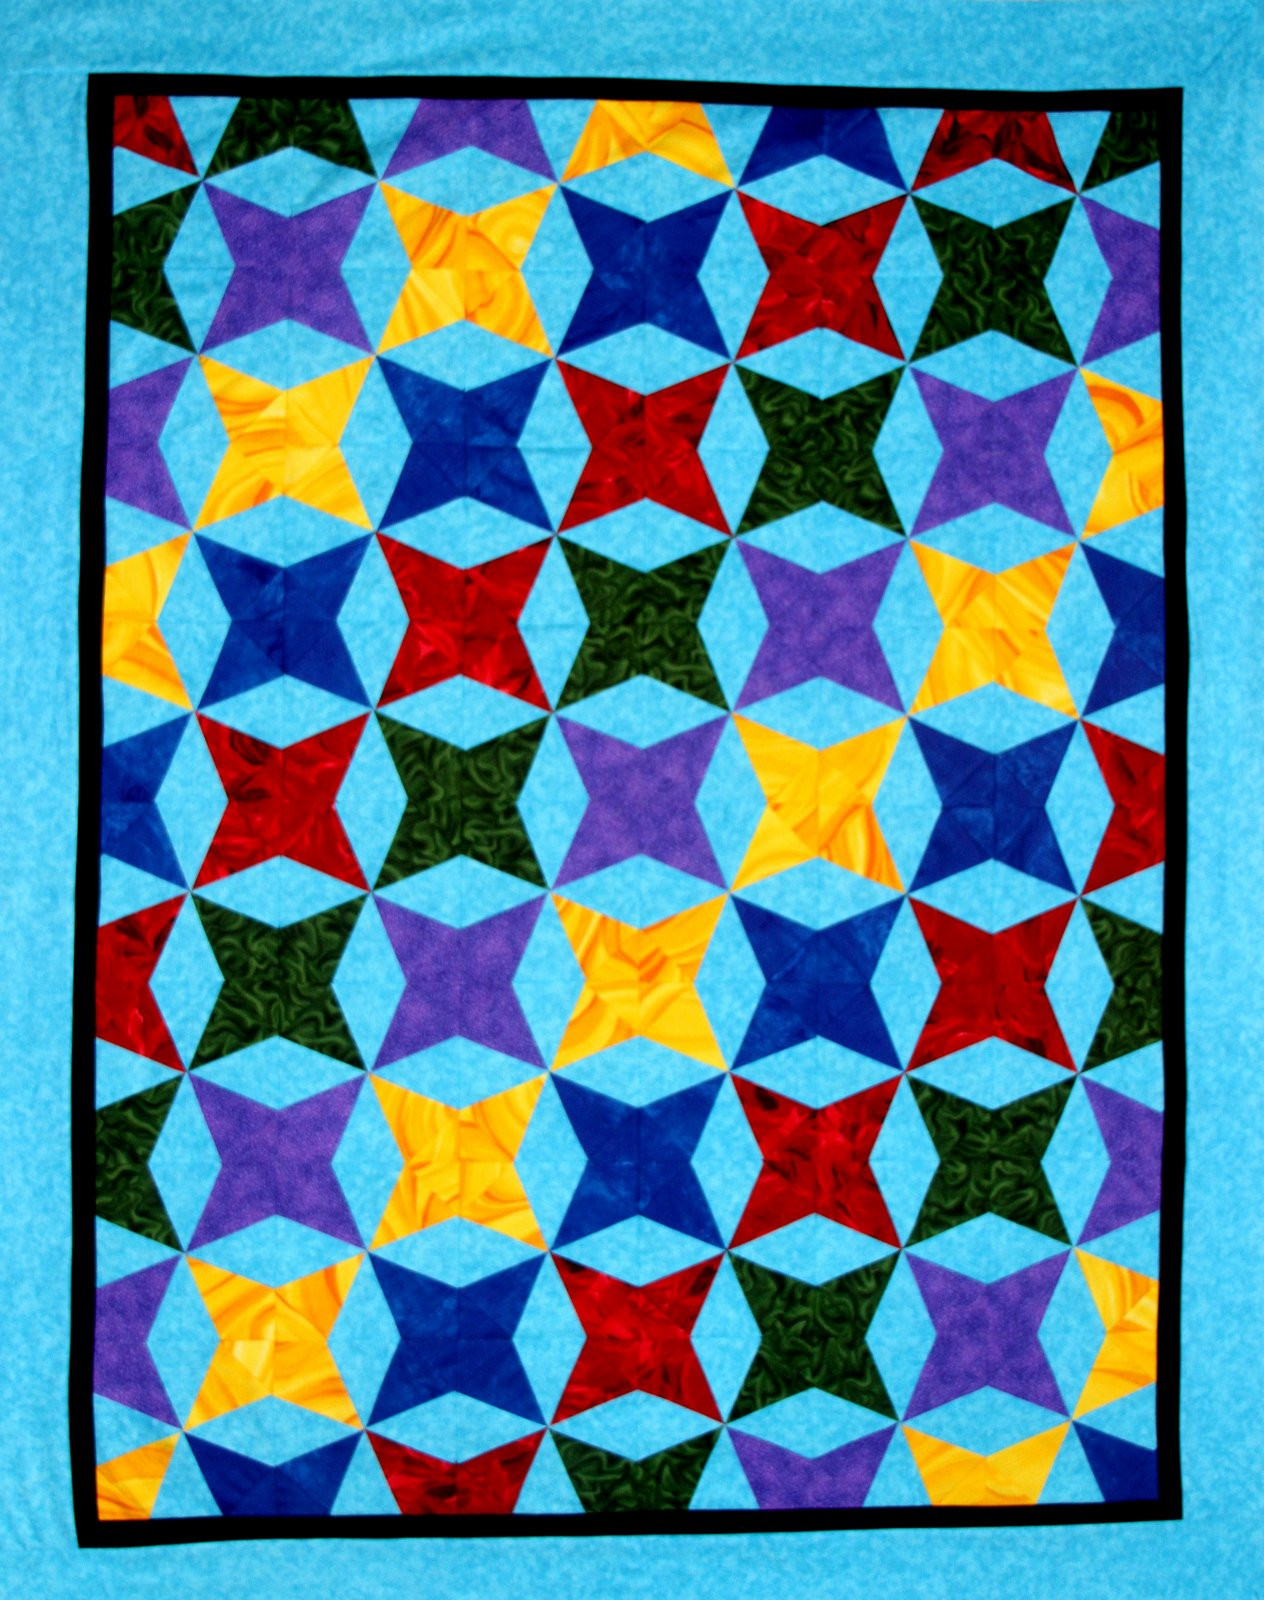 Octagon Template for Quilting